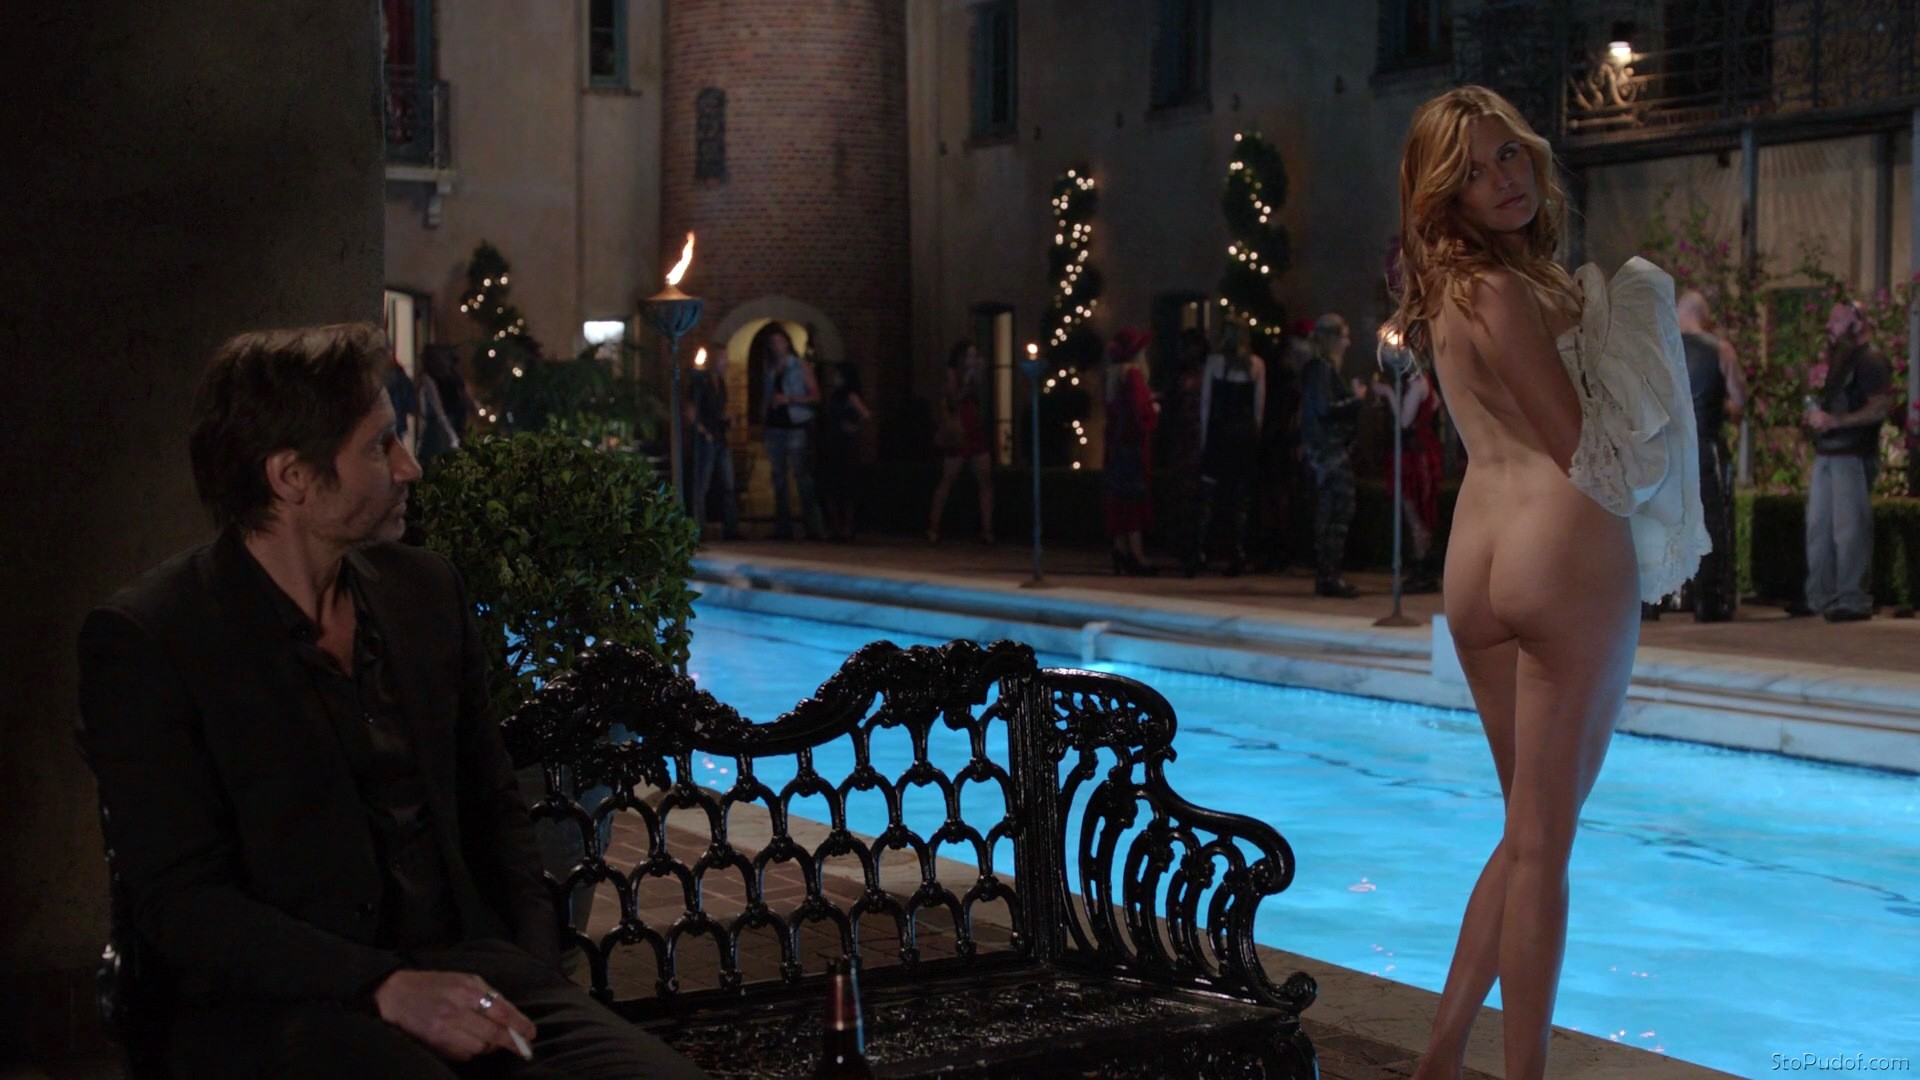 Best nude of californication